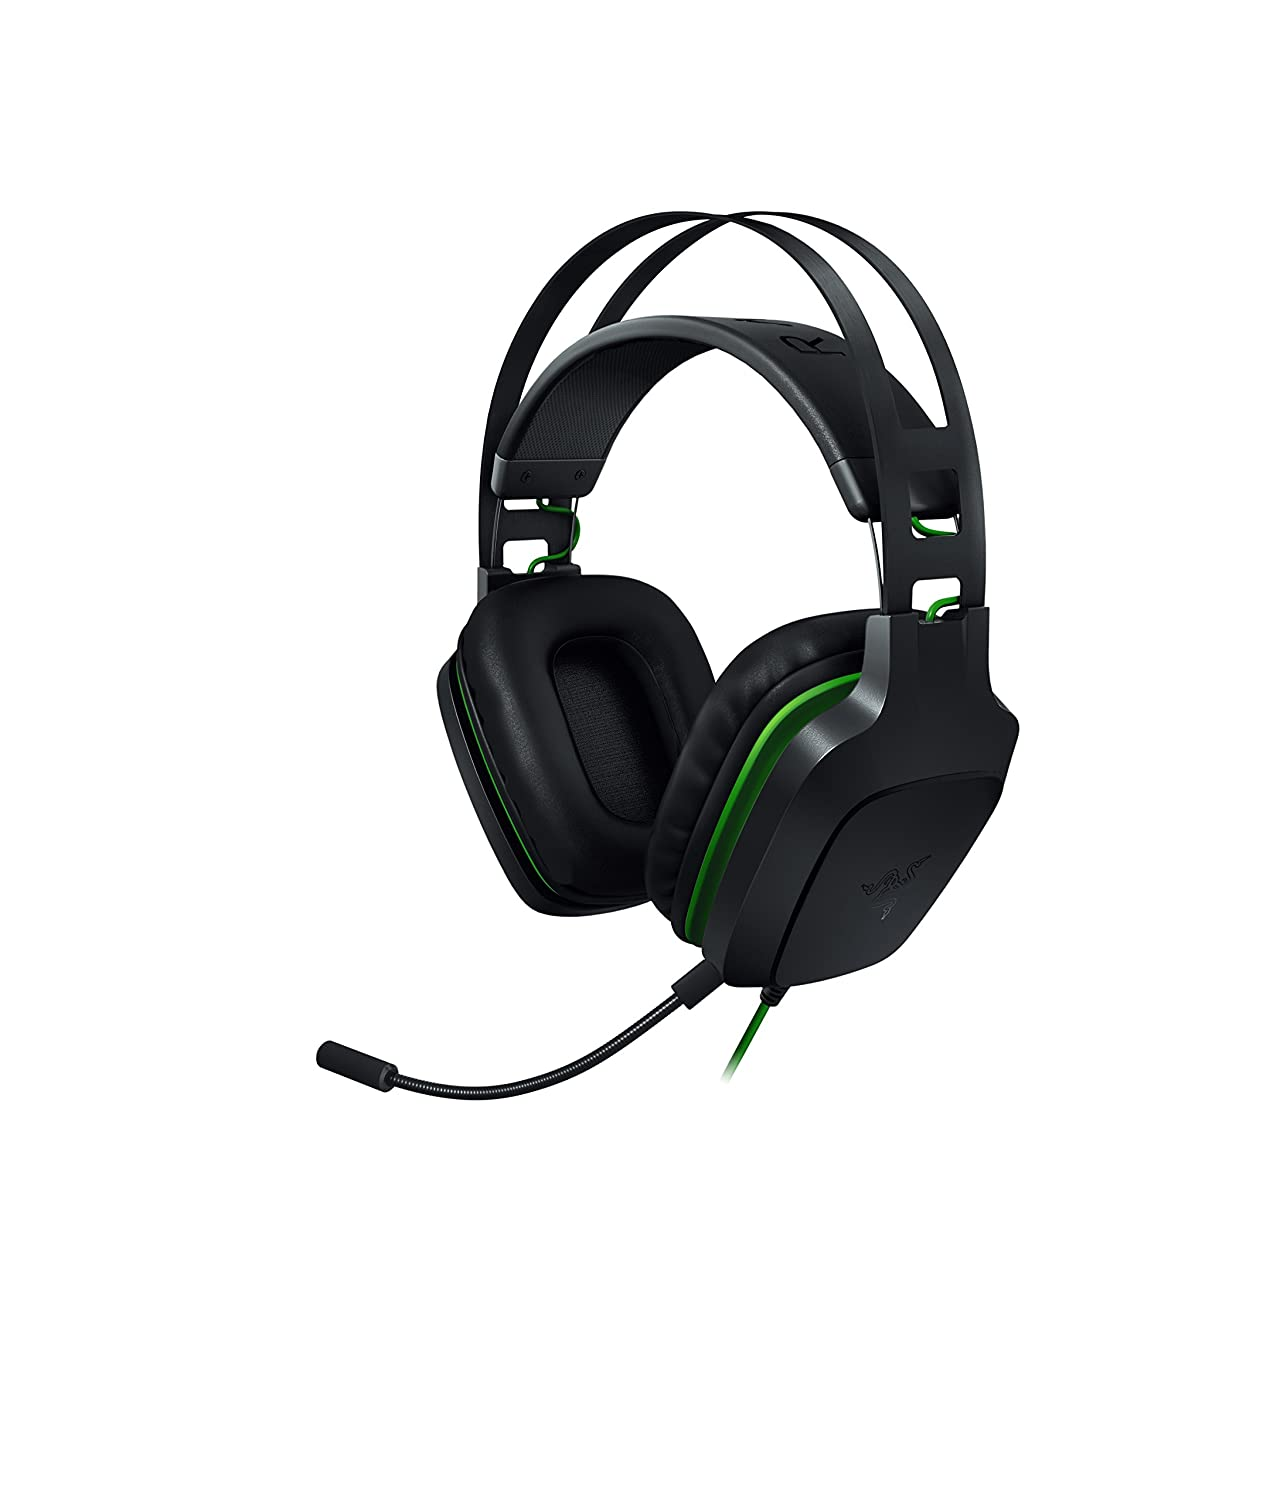 Razer Electra V2: 7.1 Surround Sound - Auto Adjusting Headband - Detachable Boom Mic with In-Line Controls - Gaming Headset Works with PC, PS4, Xbox One, Switch, & Mobile Devices